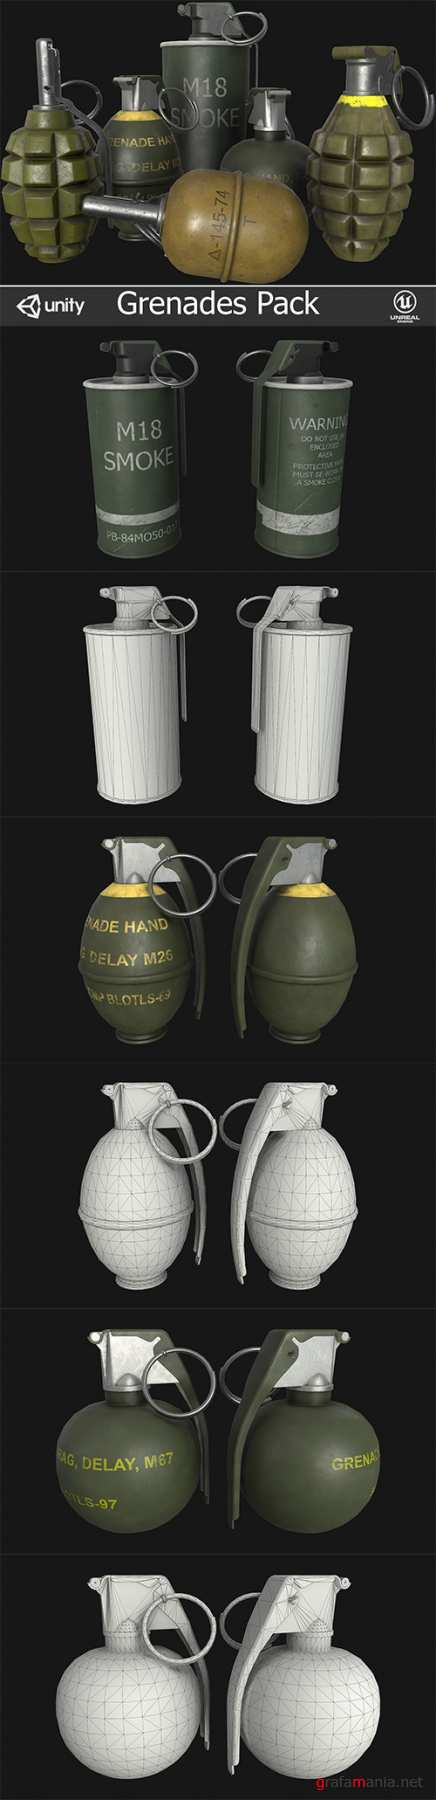 Grenades Pack Low-poly 3D model